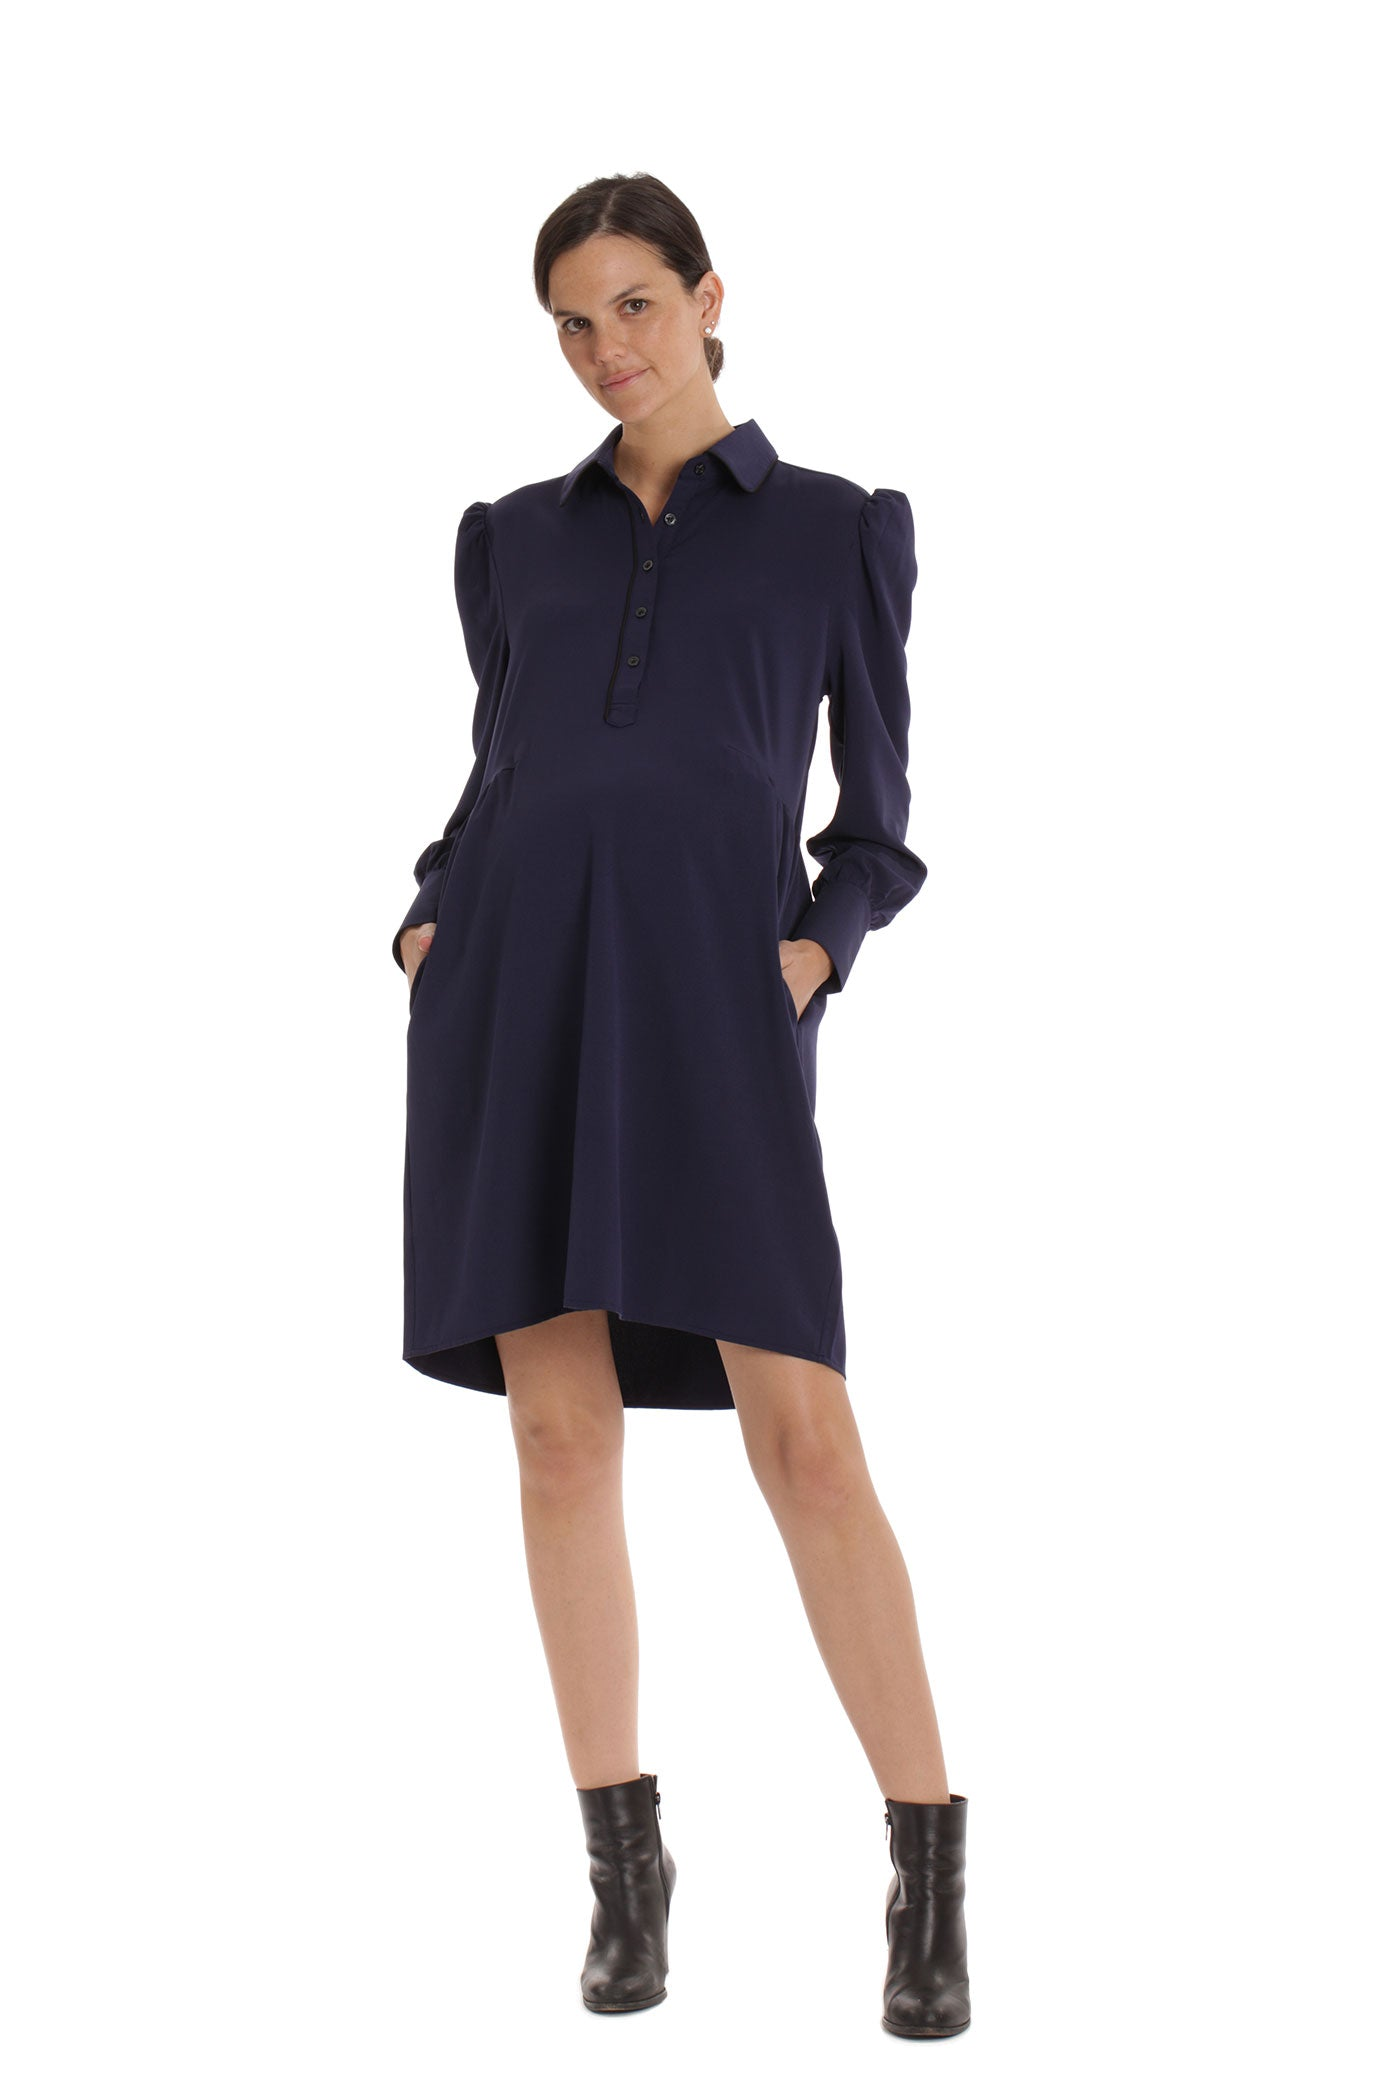 The Serena Dress - Navy